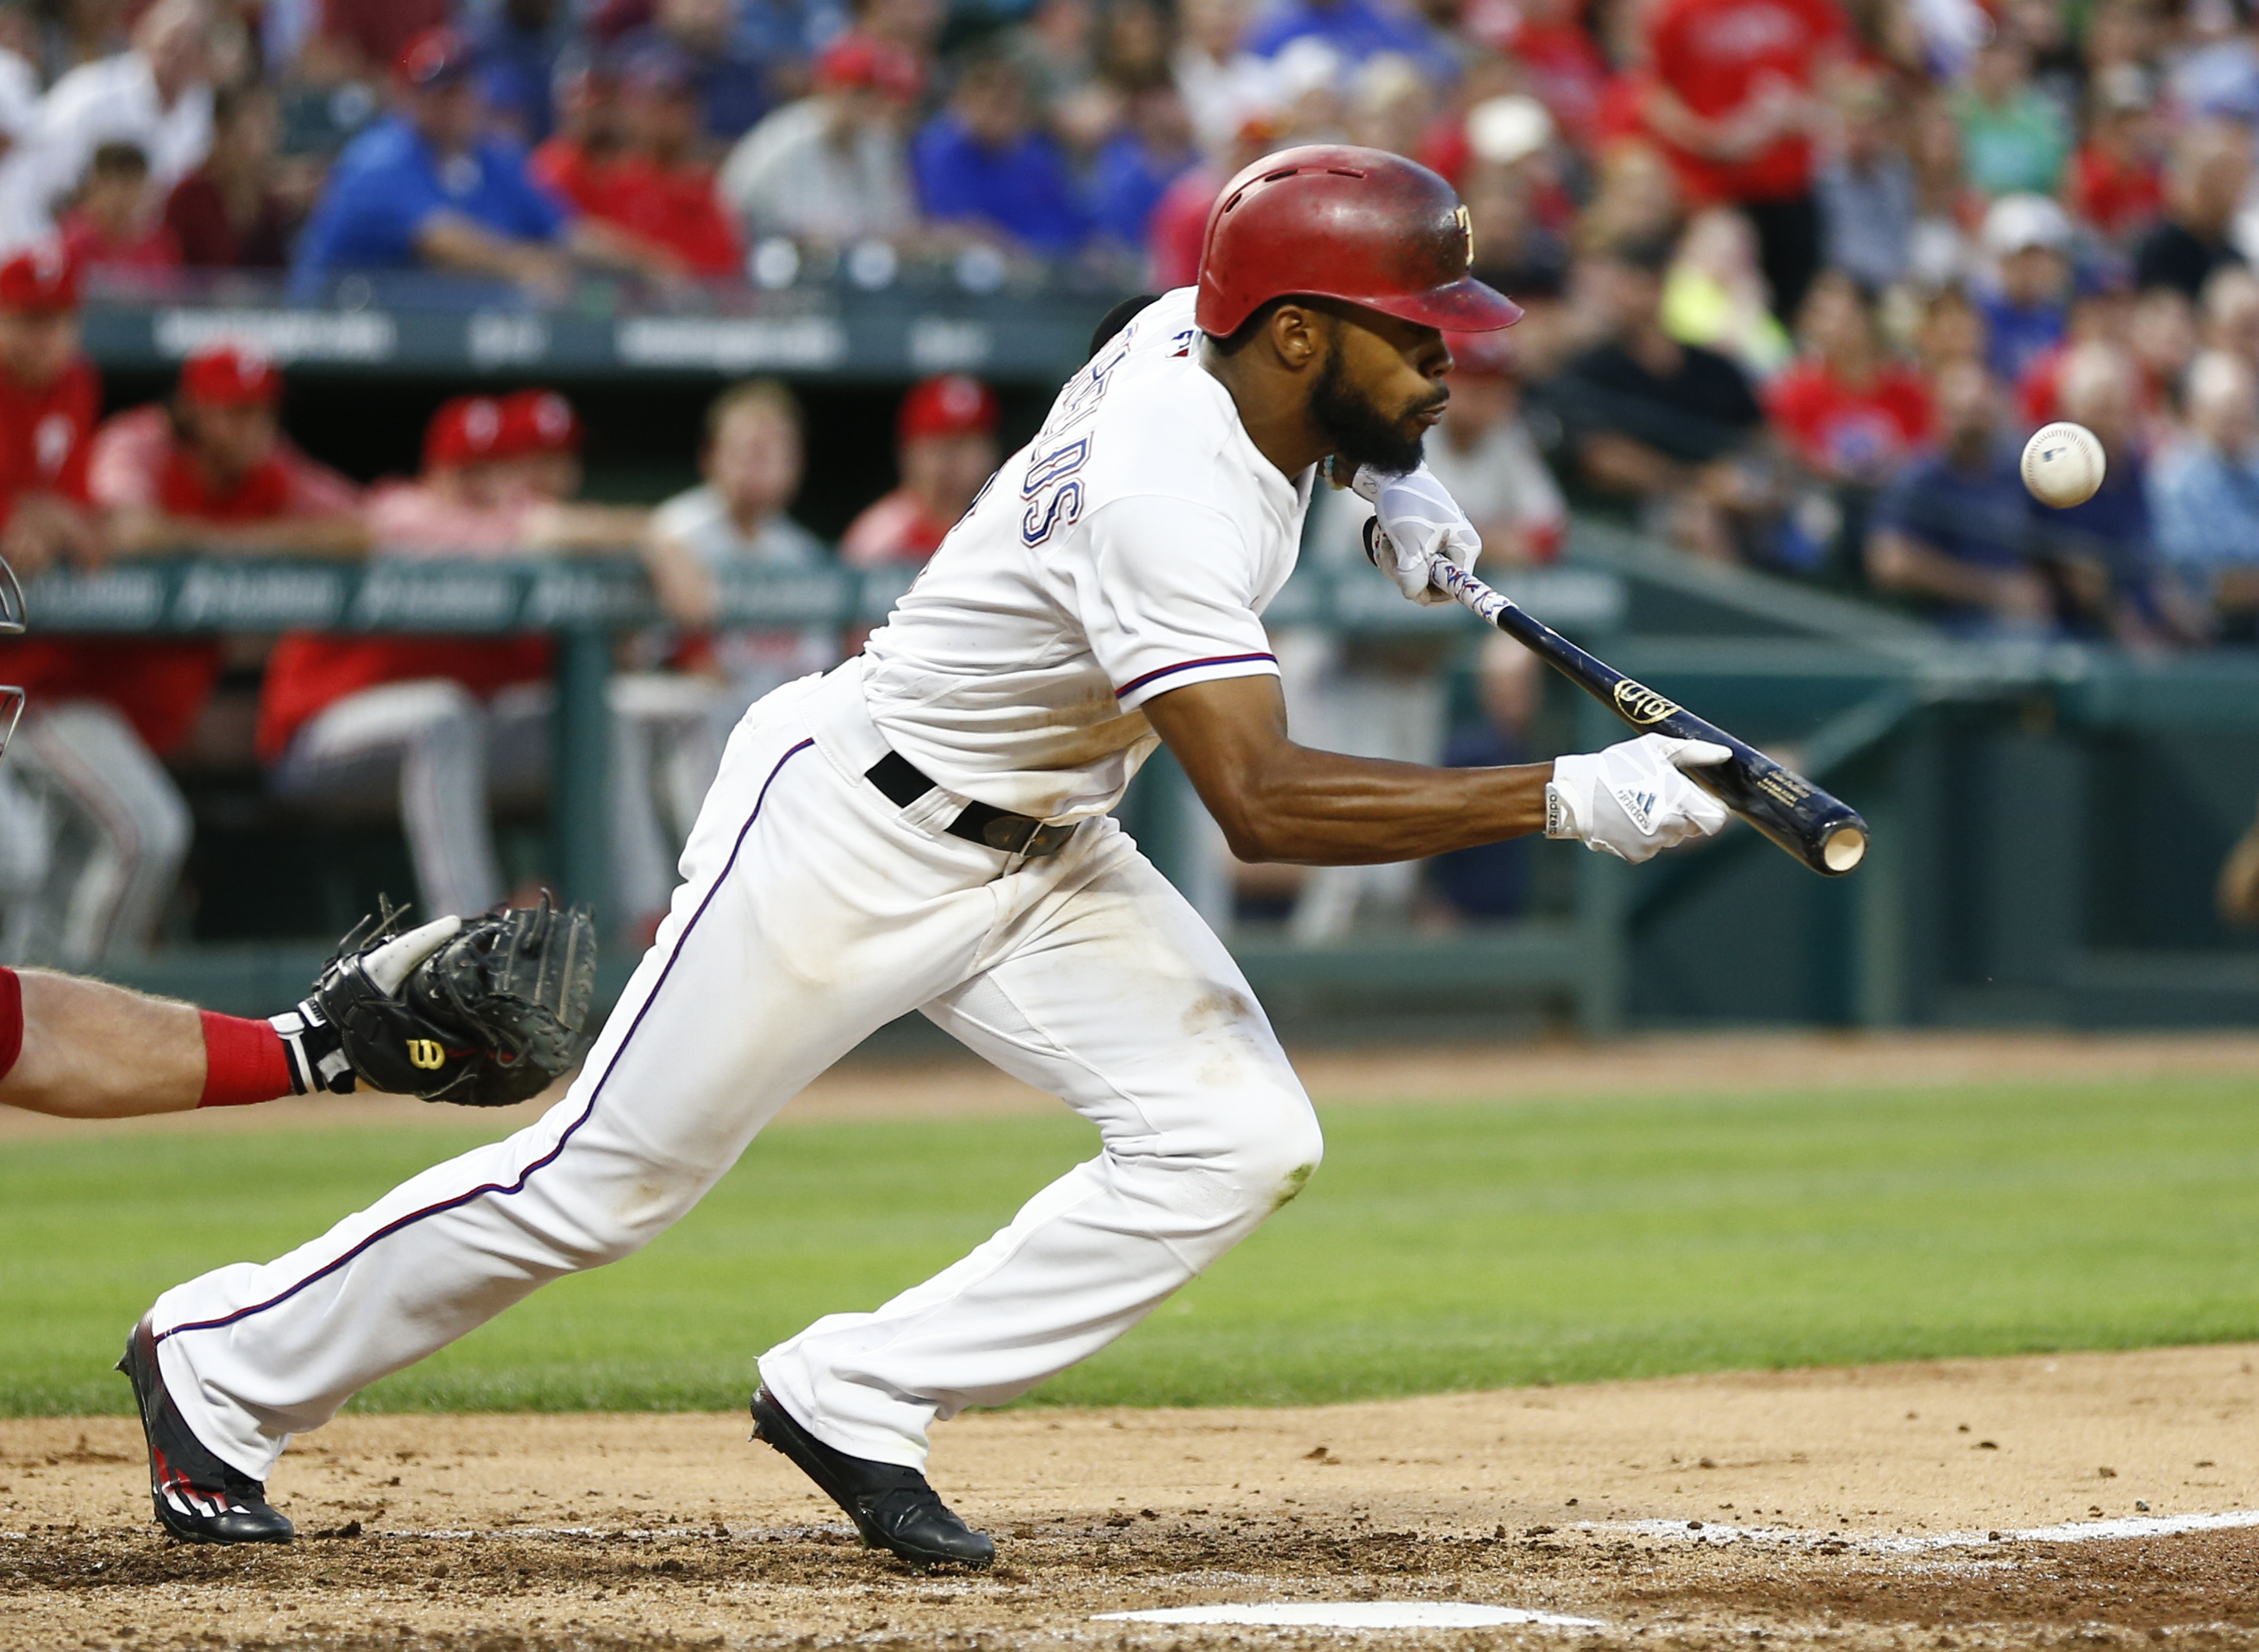 Texas Rangers left fielder Delino DeShields bunts for a single against the Philadelphia Phillies during the third inning of a baseball game, Wednesday, May 17, 2017, in Arlington, Texas. (AP Photo/Jim Cowsert)